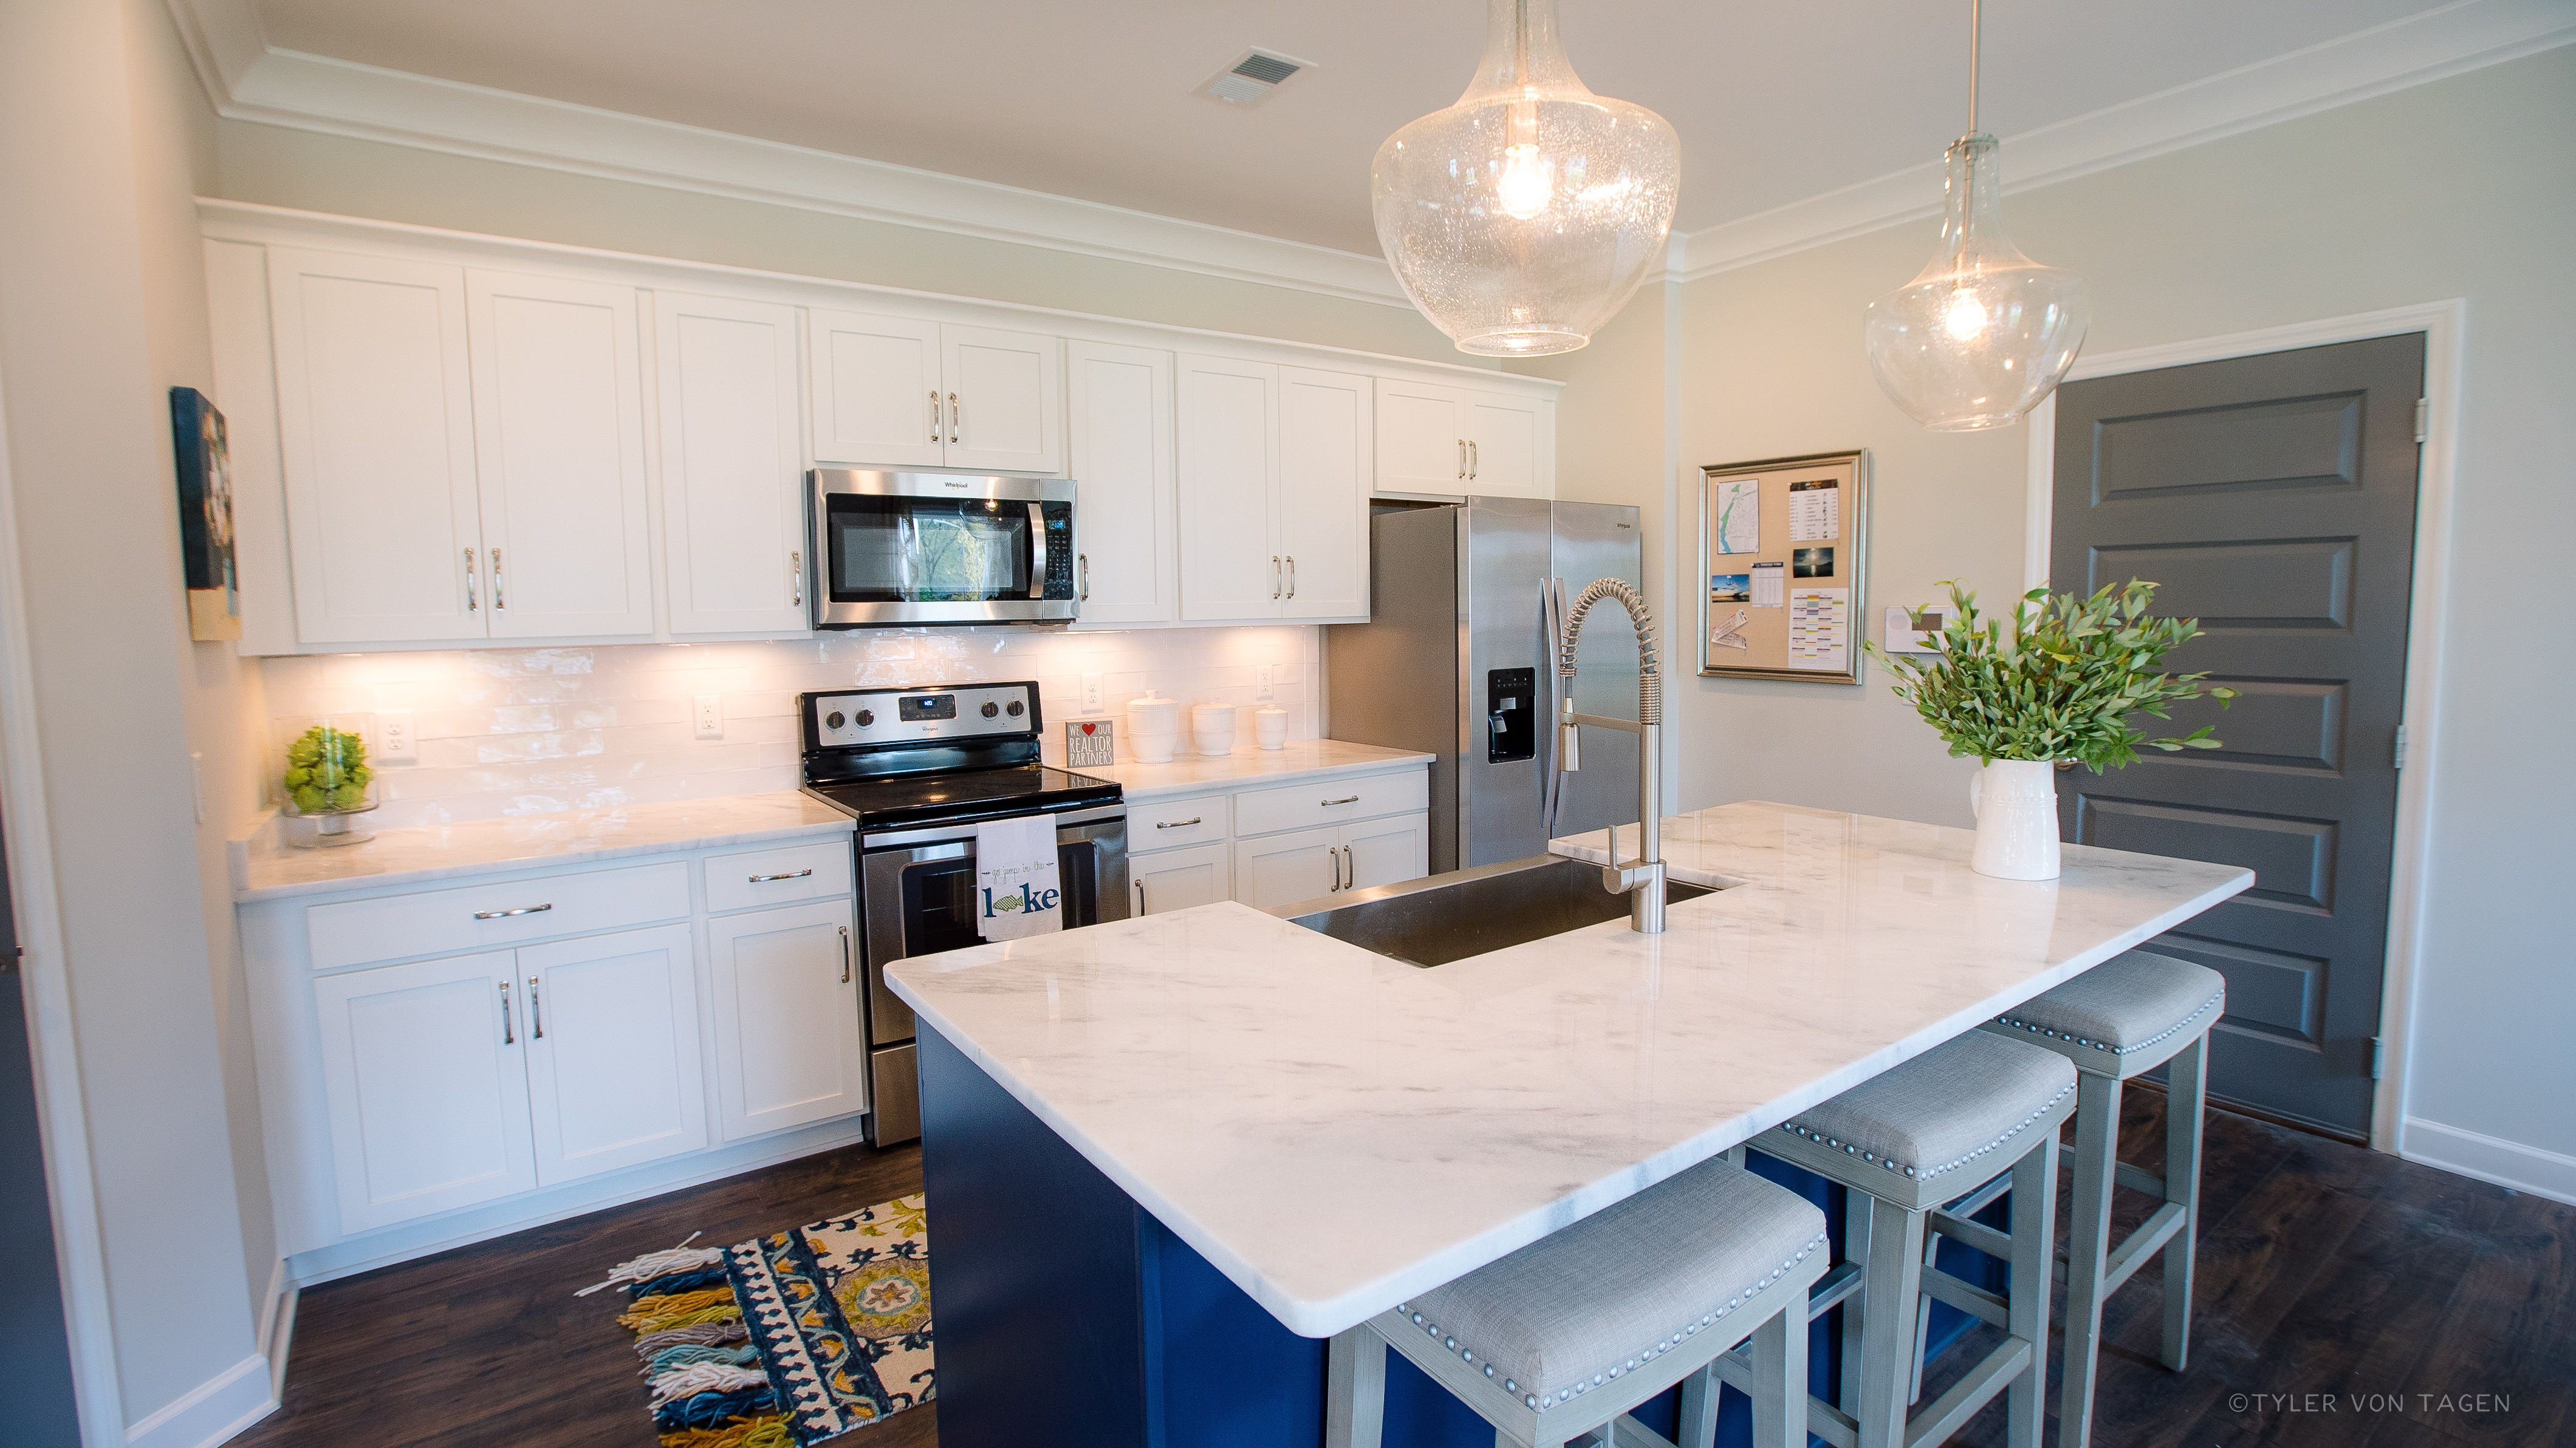 White Navy Cabinets With Shadow Storm Quartzite Kitchen Design Decor Custom Kitchen Cabinets Navy Cabinets